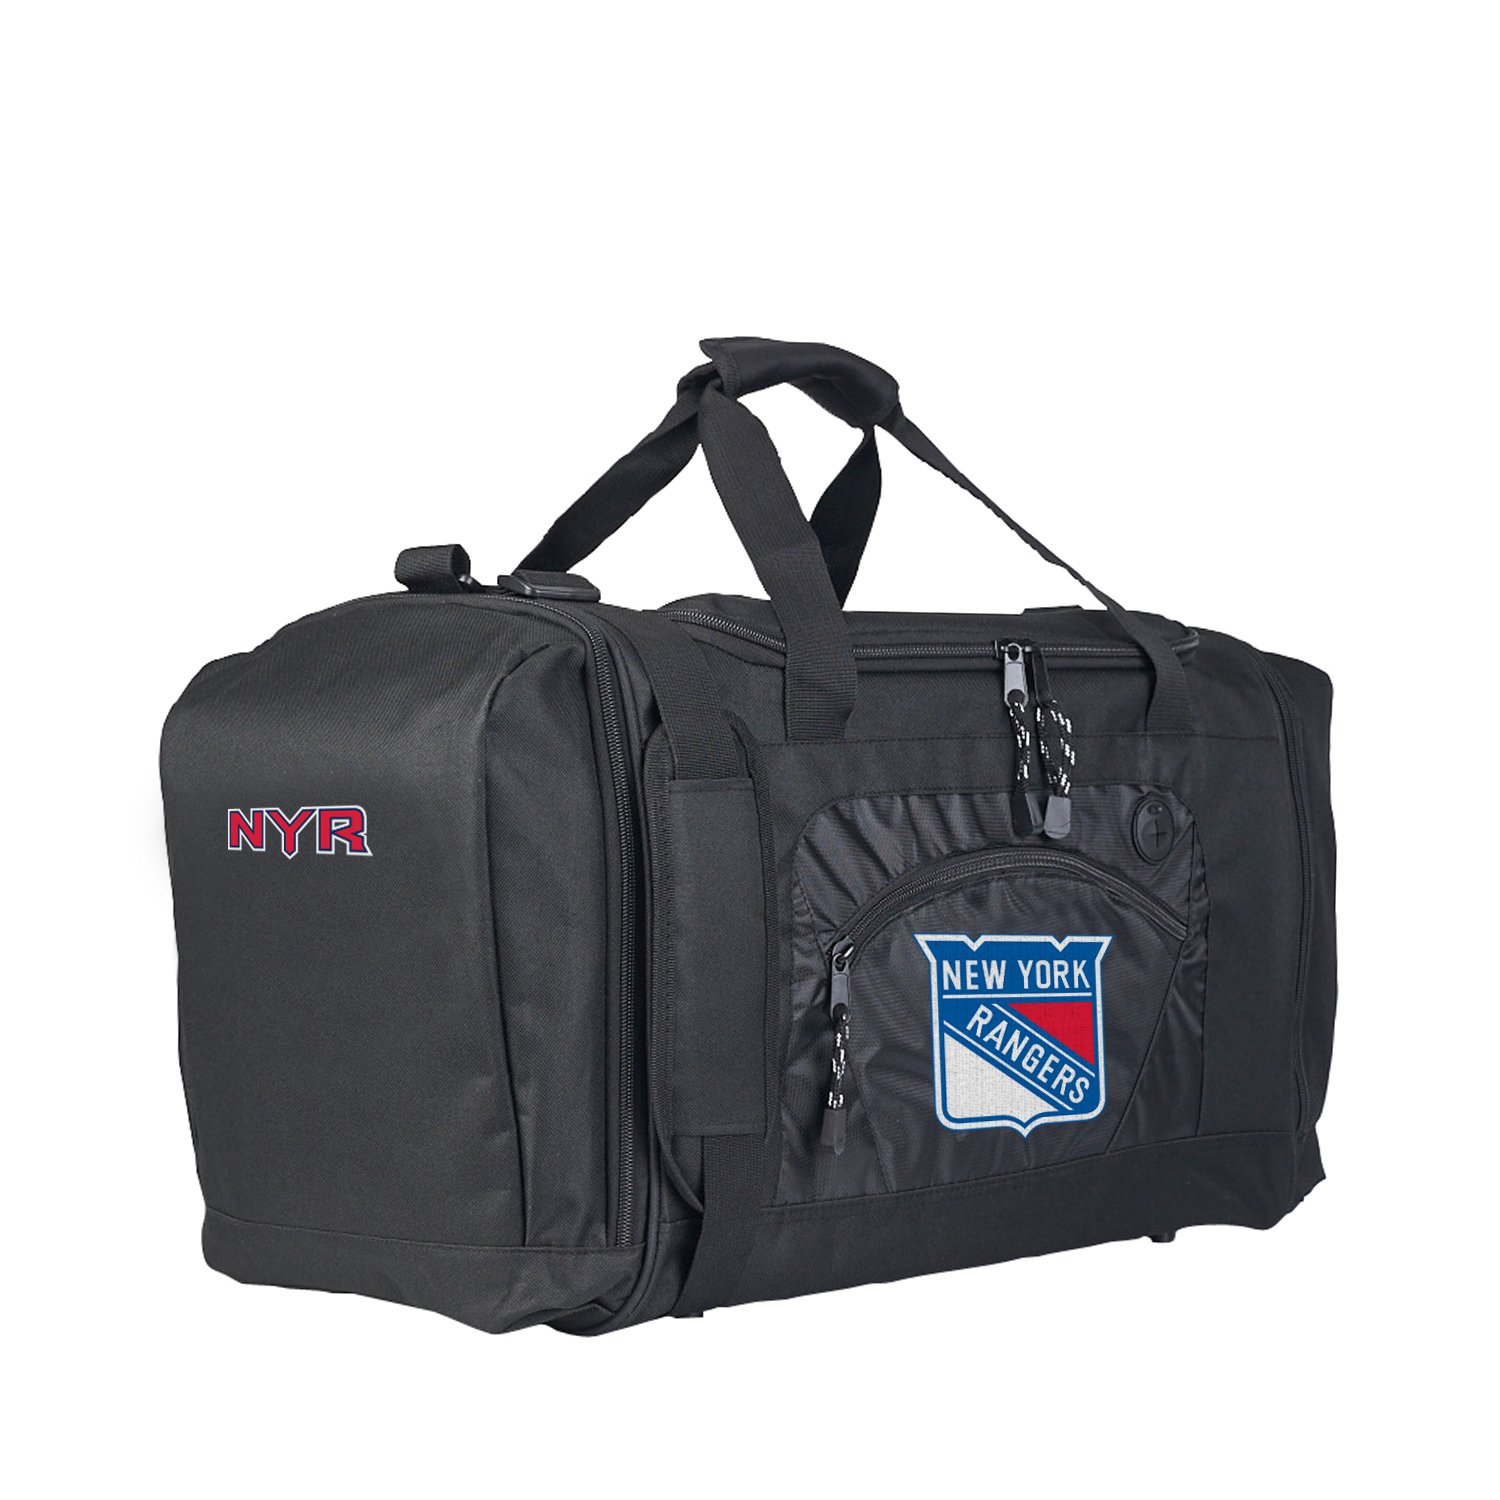 The Northwest Company Officially Licensed NHL New York Rangers Roadblock Duffel